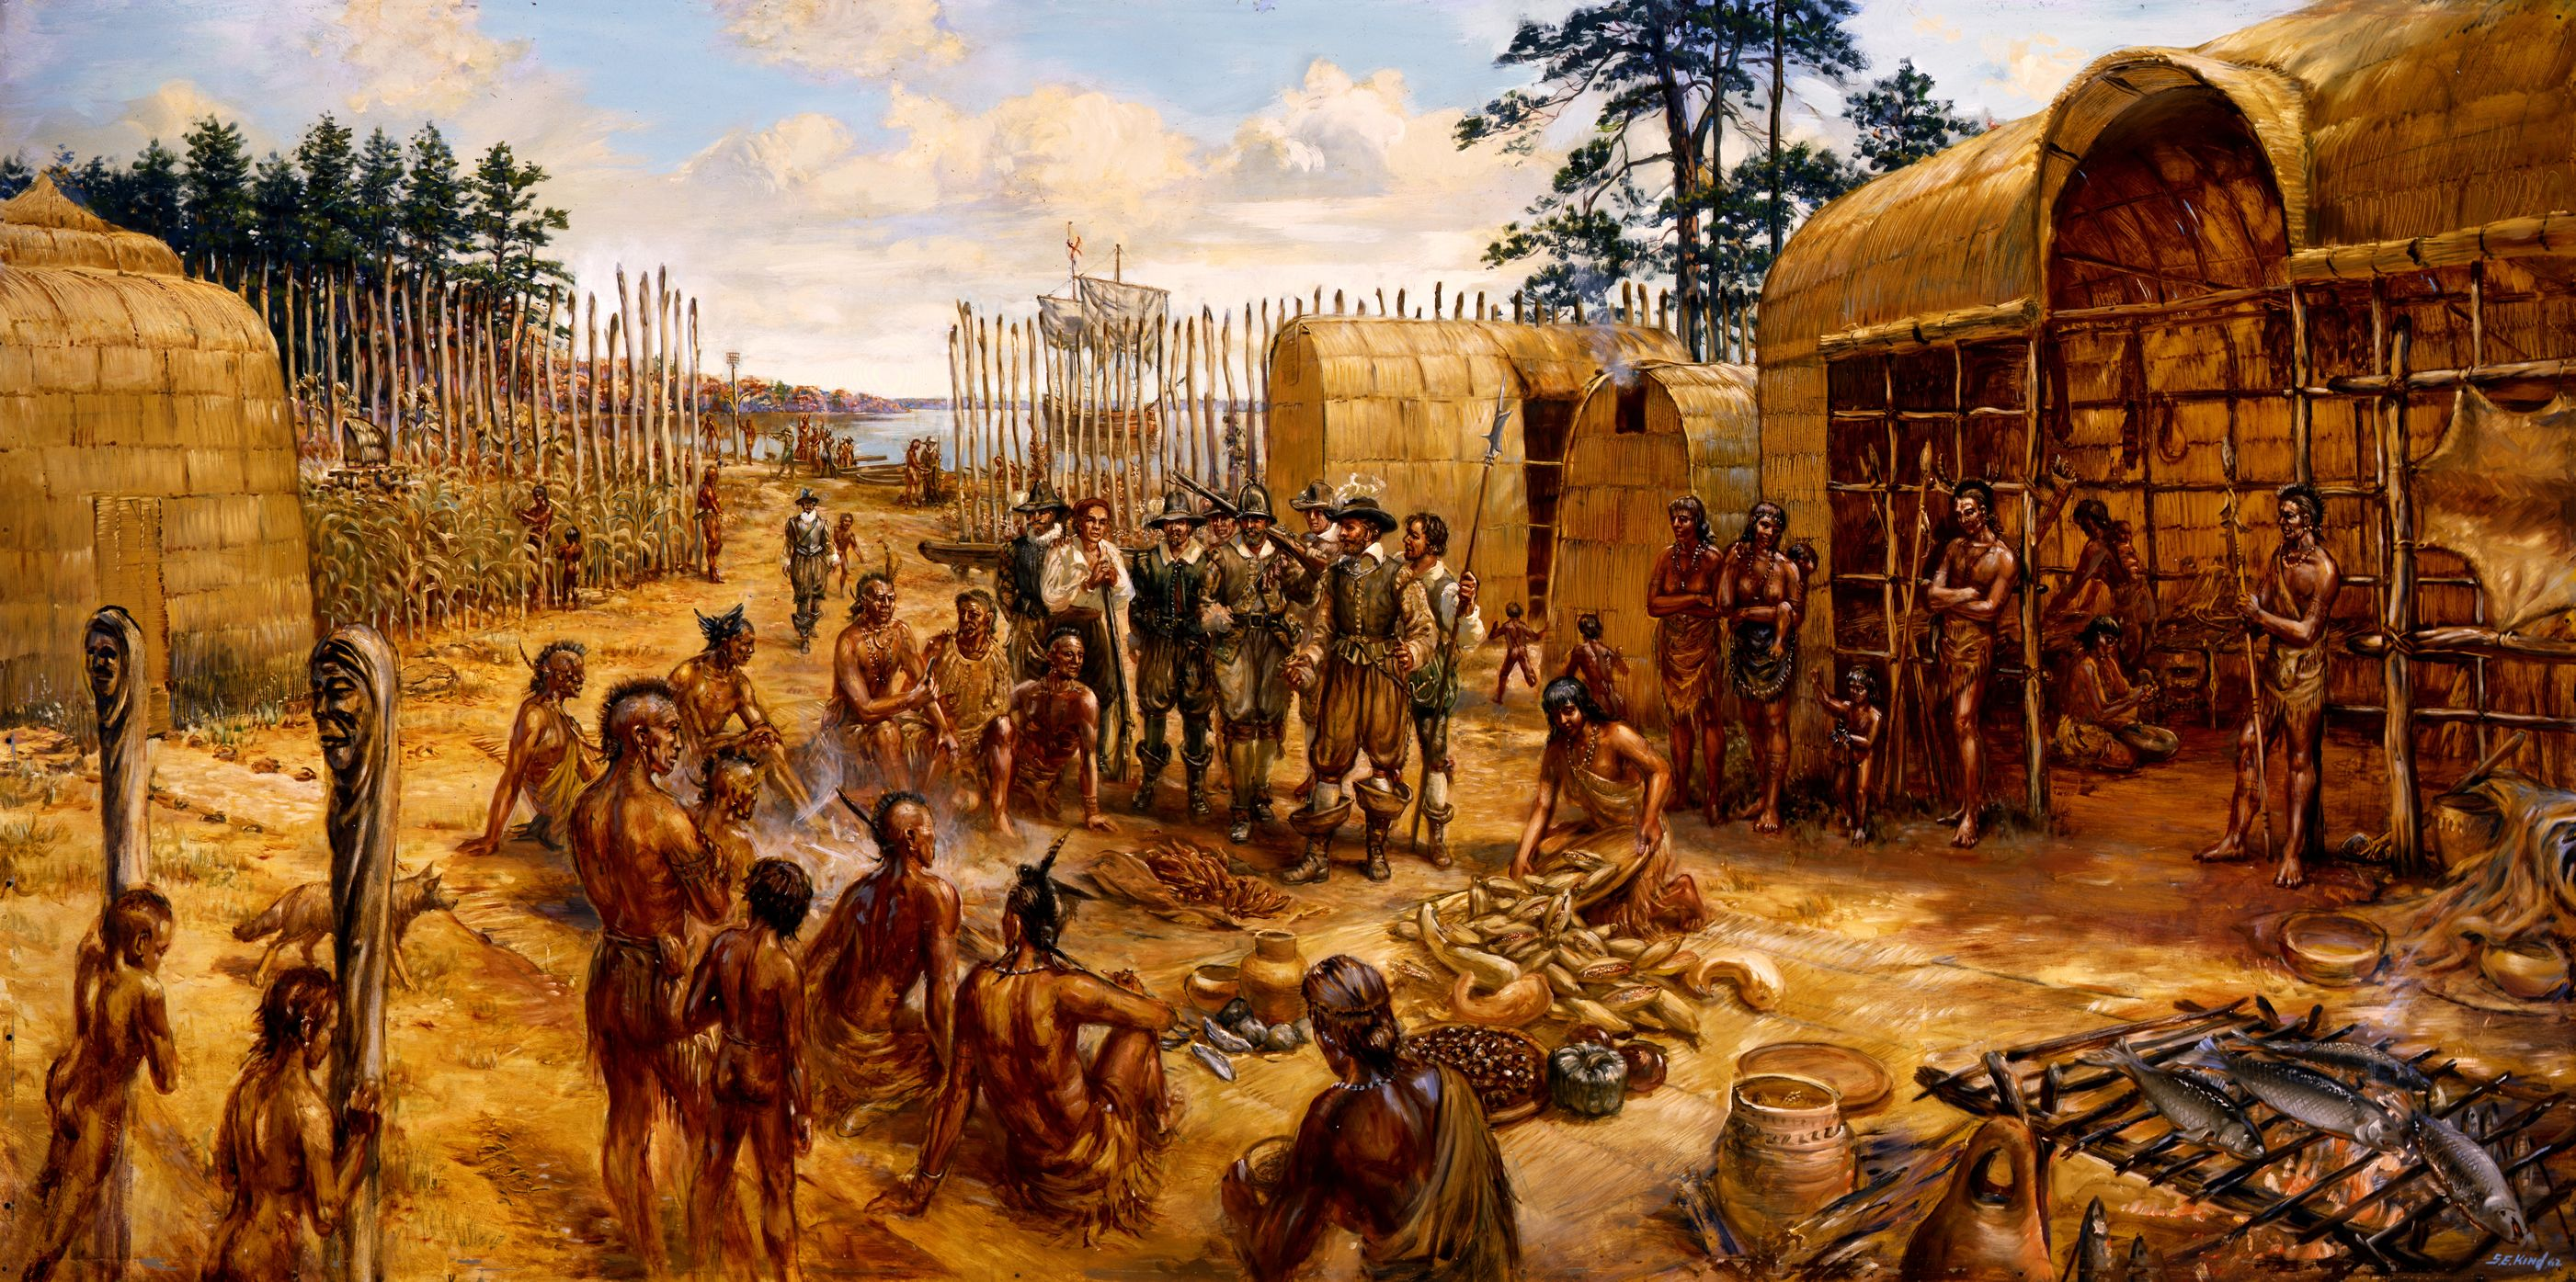 an argumentation of the settlement and colonization of the native people of america The population figures for indigenous peoples in the americas before the 1492  voyage of  contact with the europeans led to the european colonization of the  americas, in which millions of immigrants from  gifts to two neutral lenape  indian dignitaries during a peace settlement negotiation, according to the entry in  the.